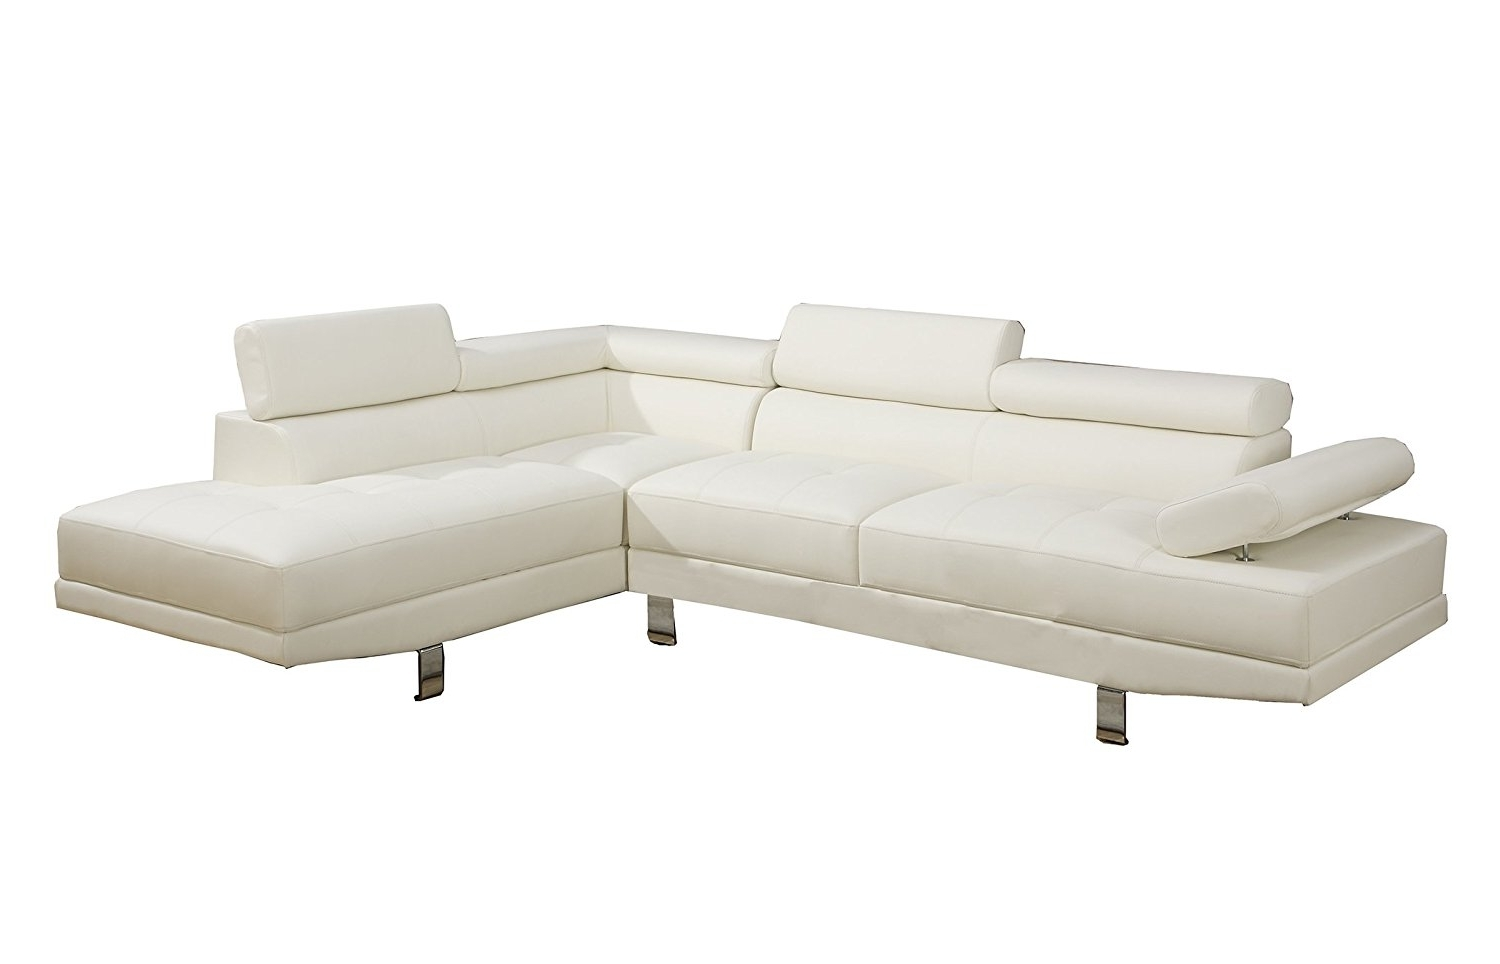 Latest White Leather Sectionals With Chaise For Amazon: Poundex 2 Pieces Faux Leather Sectional Right Chaise (View 6 of 15)